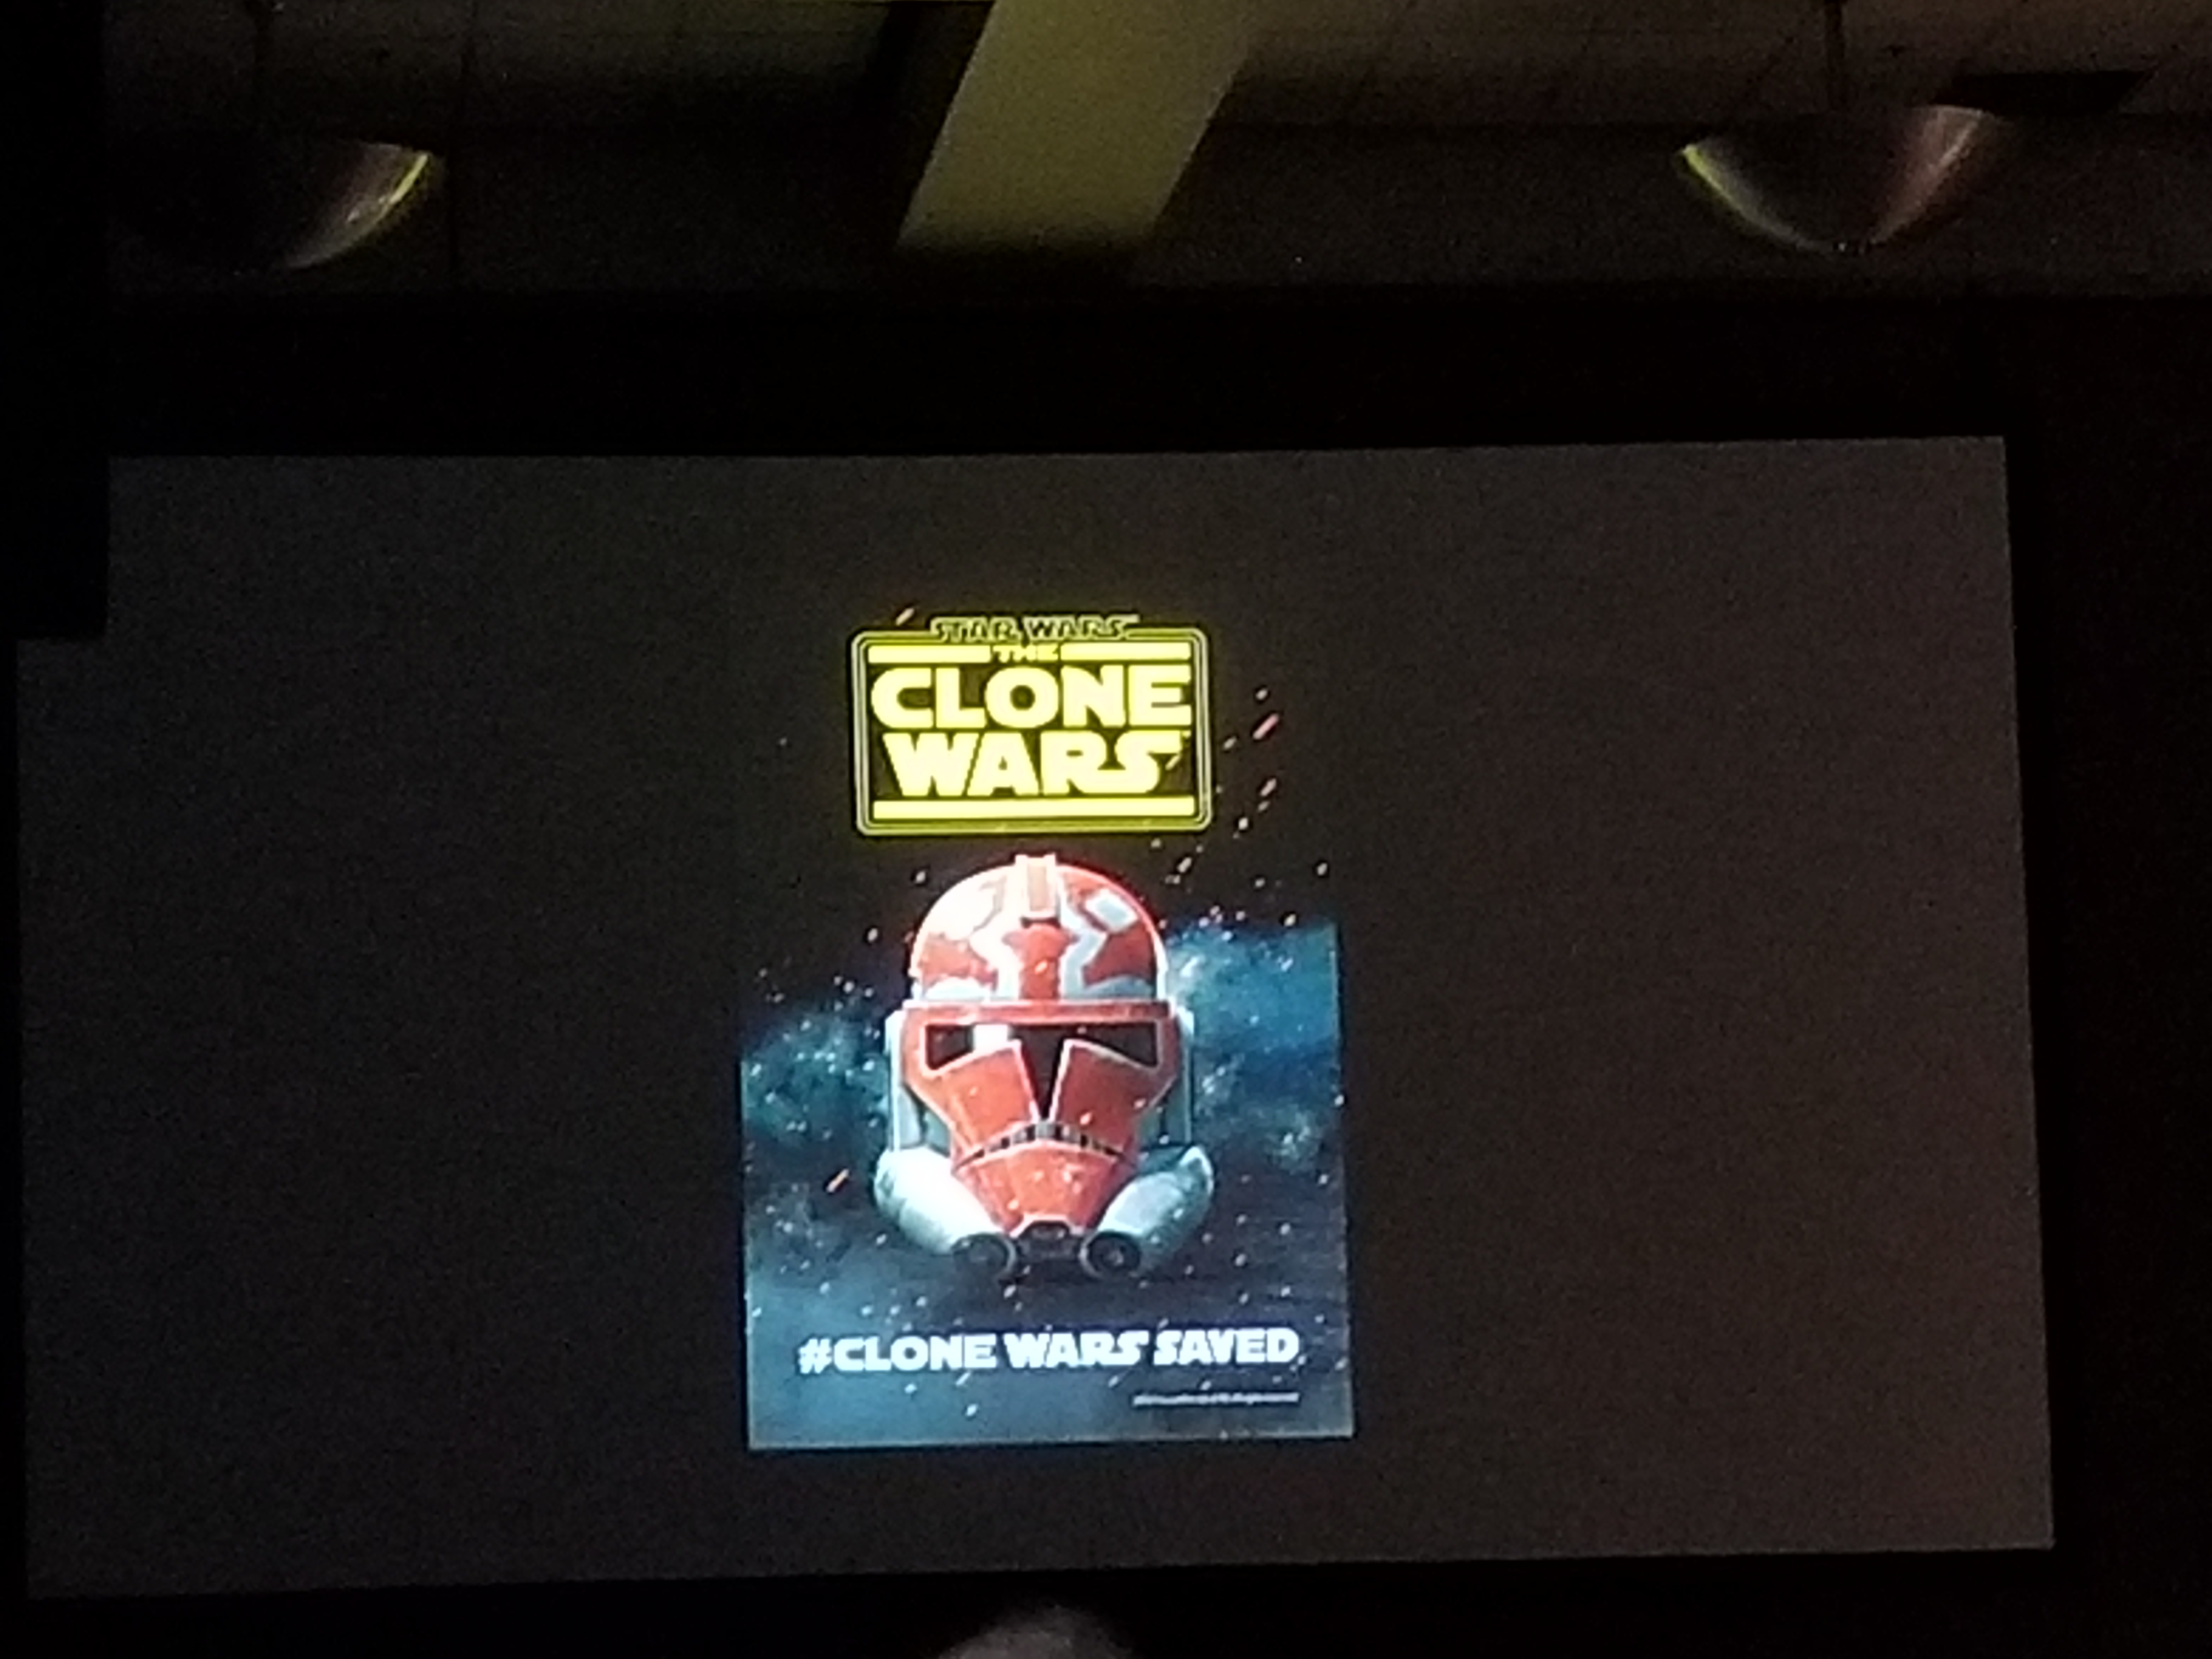 New Clone Wars Poster!